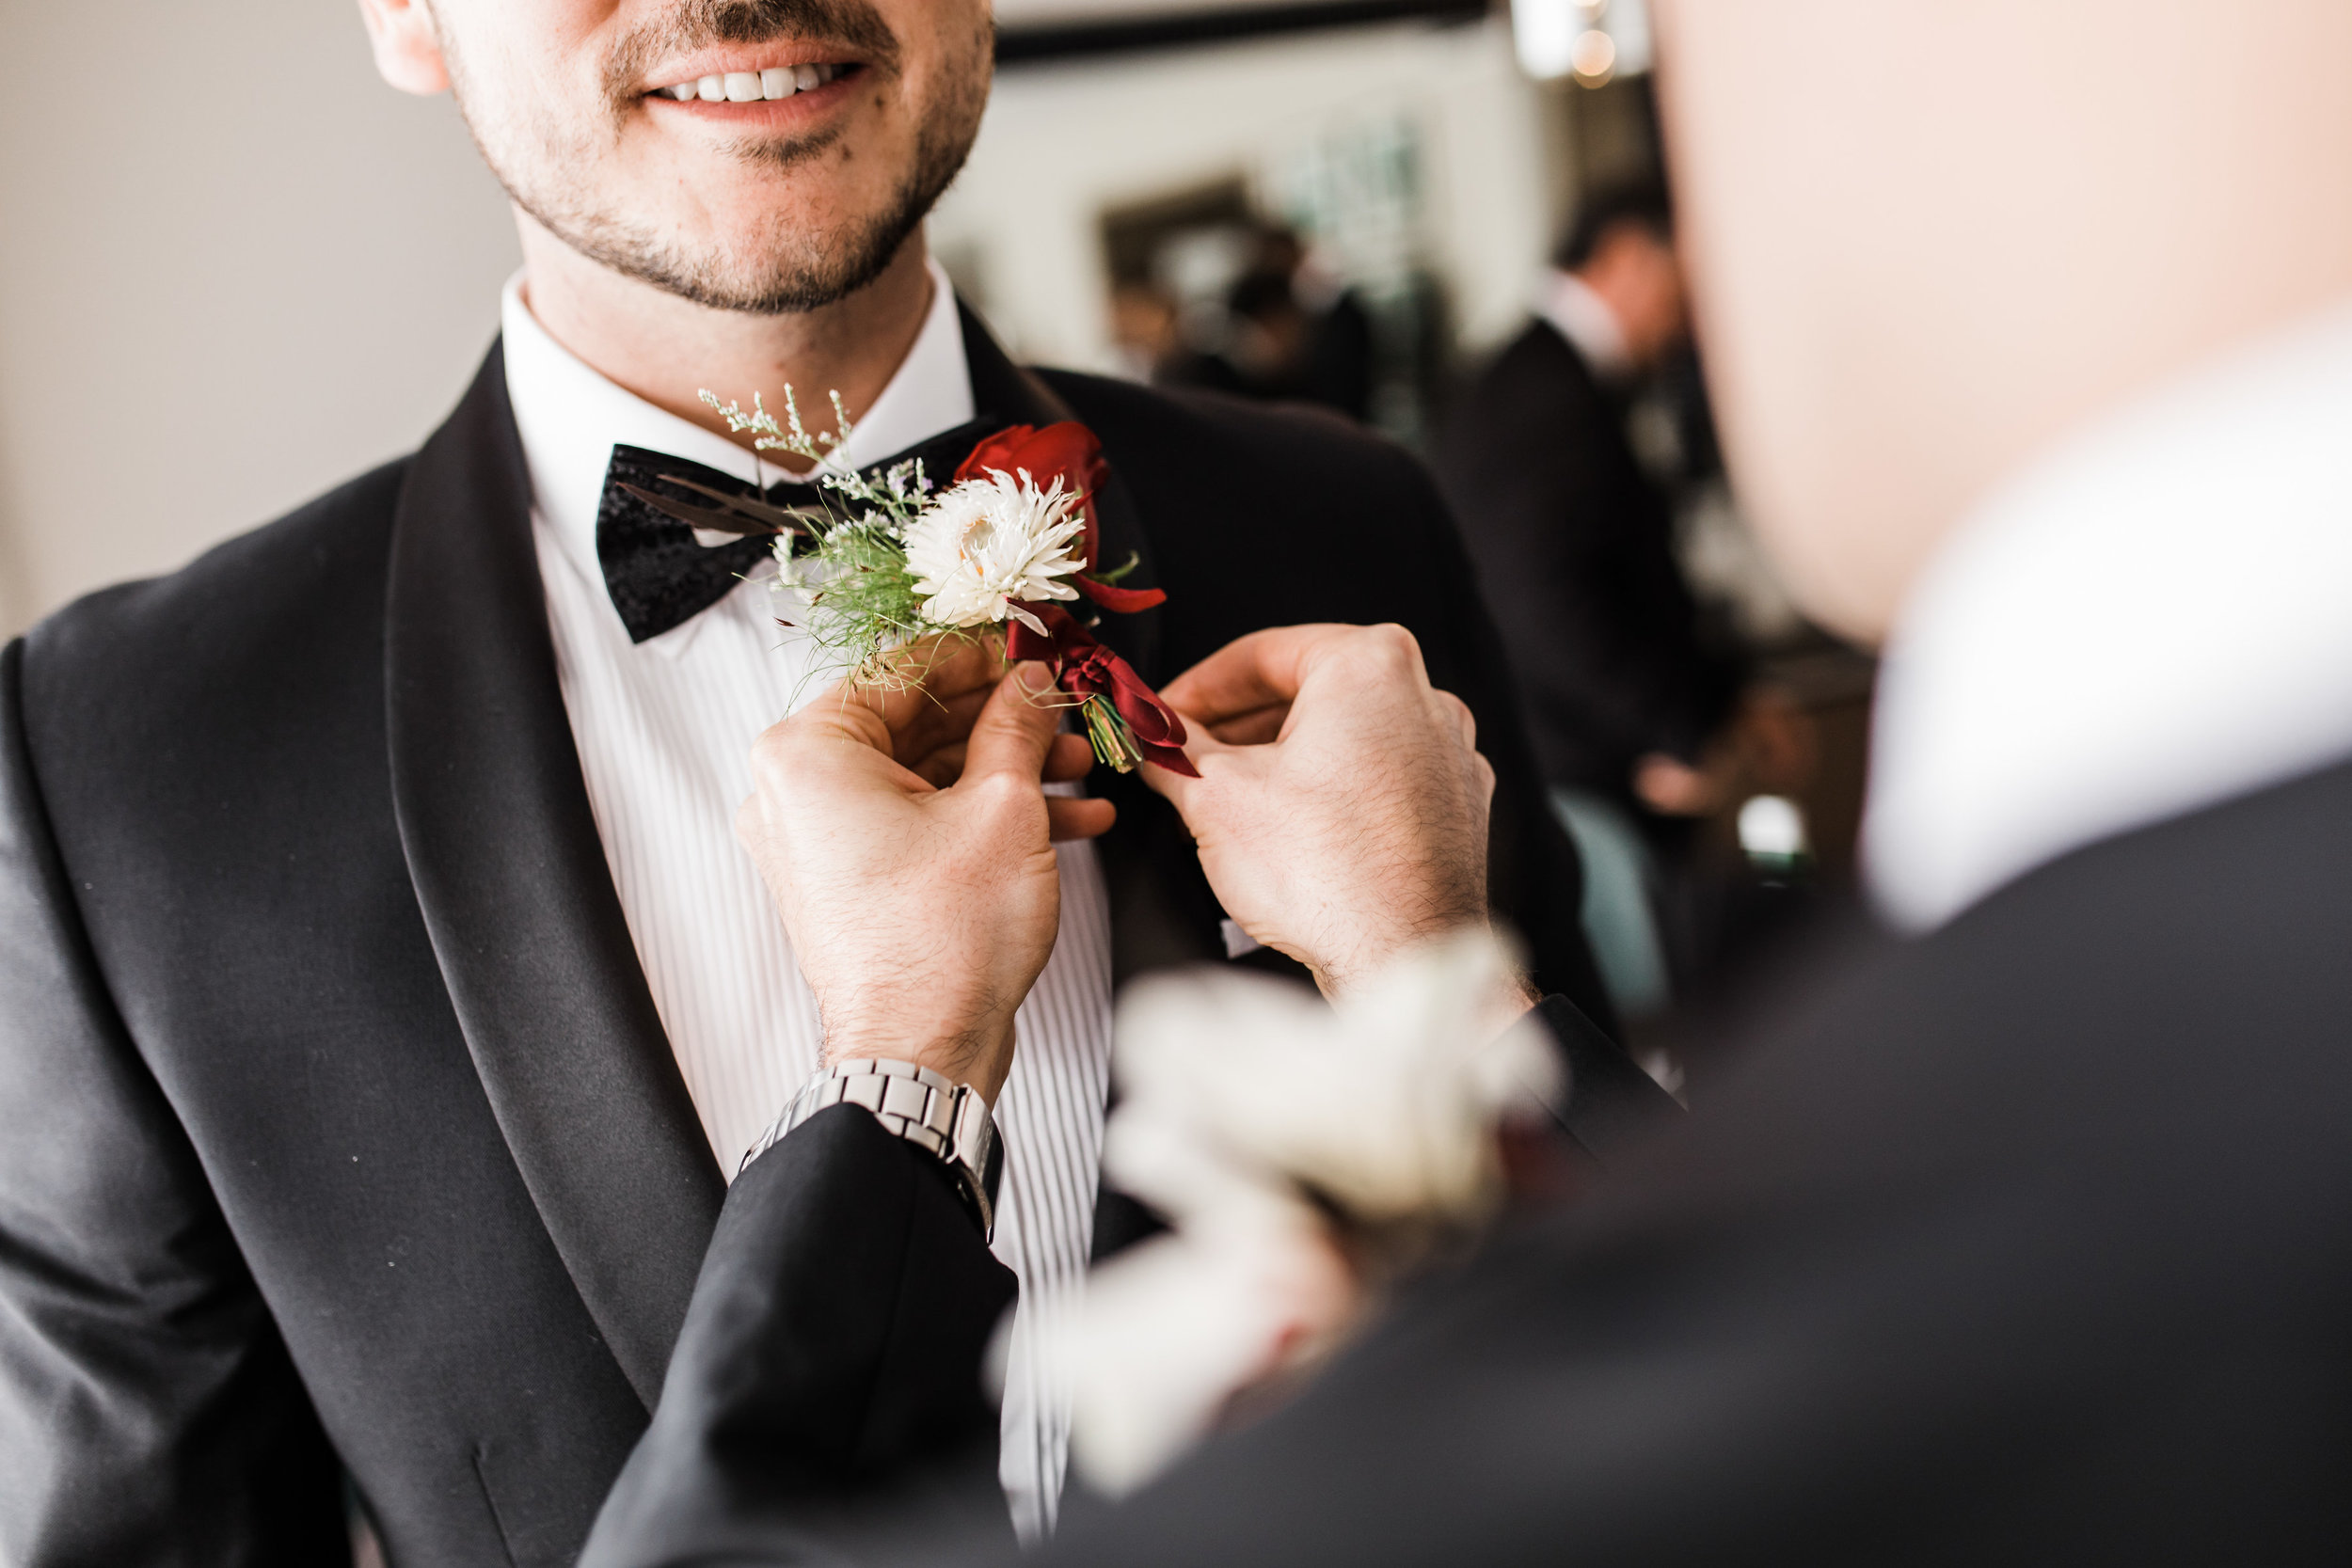 Groom buttonhole - For grooms wanting to match your partner with a floral touch, we recommend a buttonhole that you'd pin on your chest. Usually this goes on the lapel of a jacket.